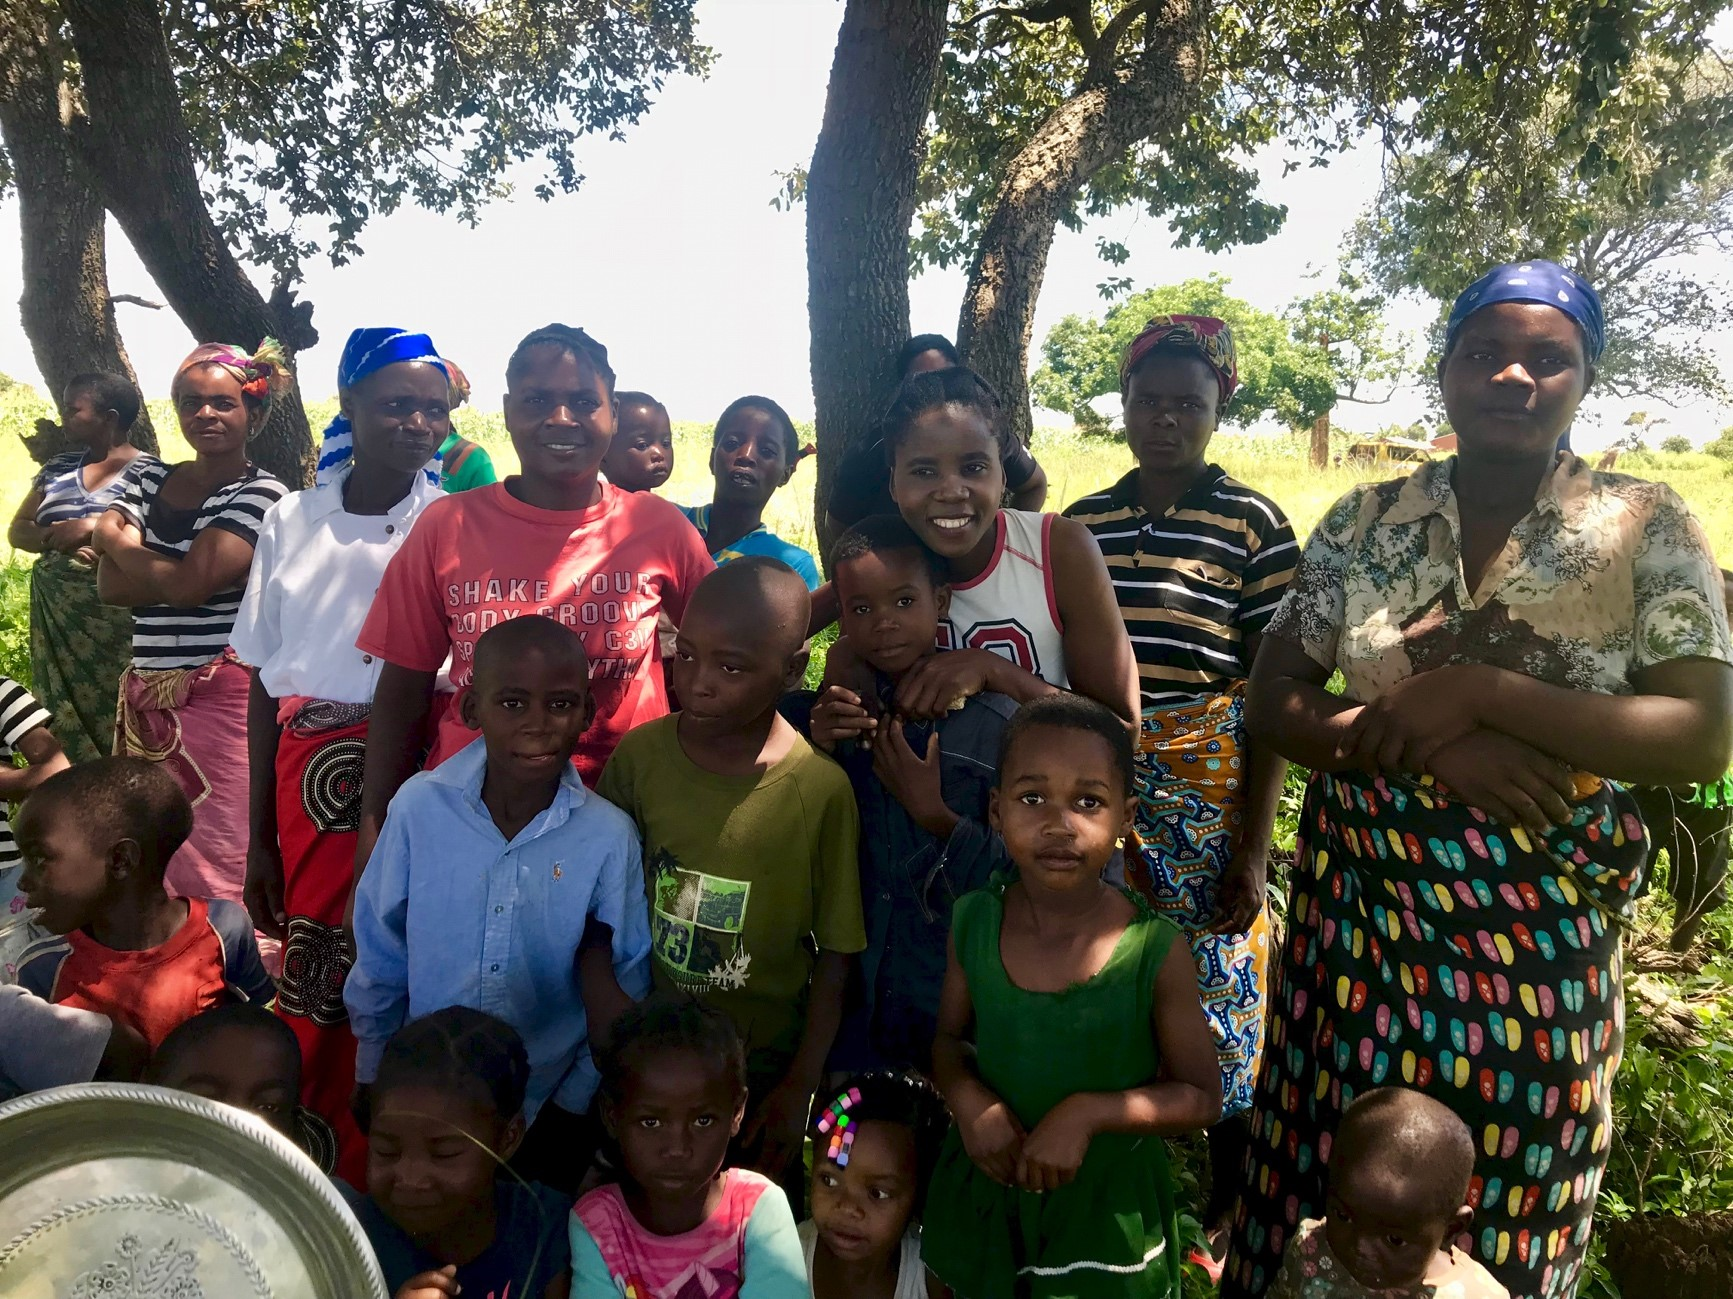 Just a few of the many people who came to watch the drilling of the borehole. With the drilling of the borehole, they now realize that the construction of the new rural health center in Phalaza will soon be a reality thanks to the generosity and leadership of Lexington Presbyterian Church in Lexington, VA.